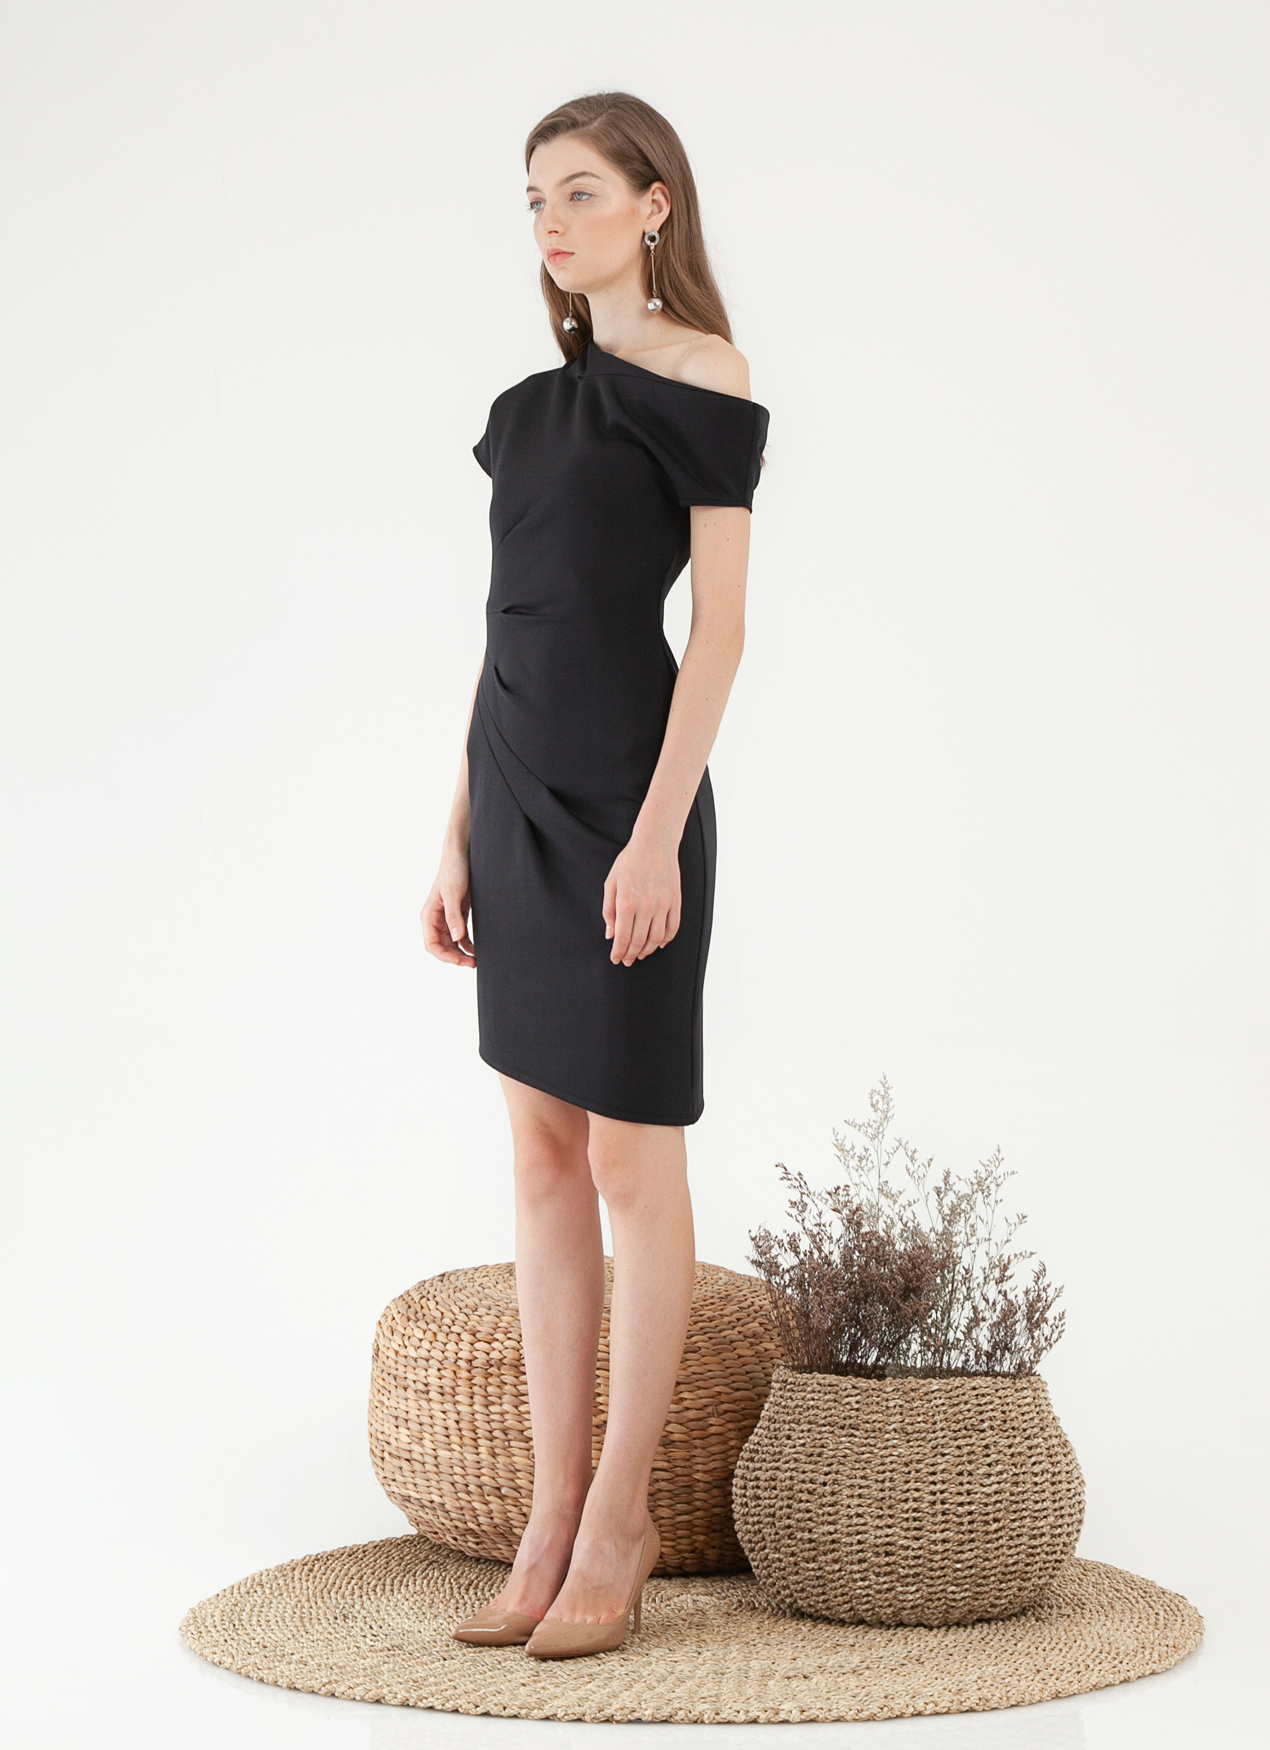 CLOTH INC Micah Pleat Dress - Black